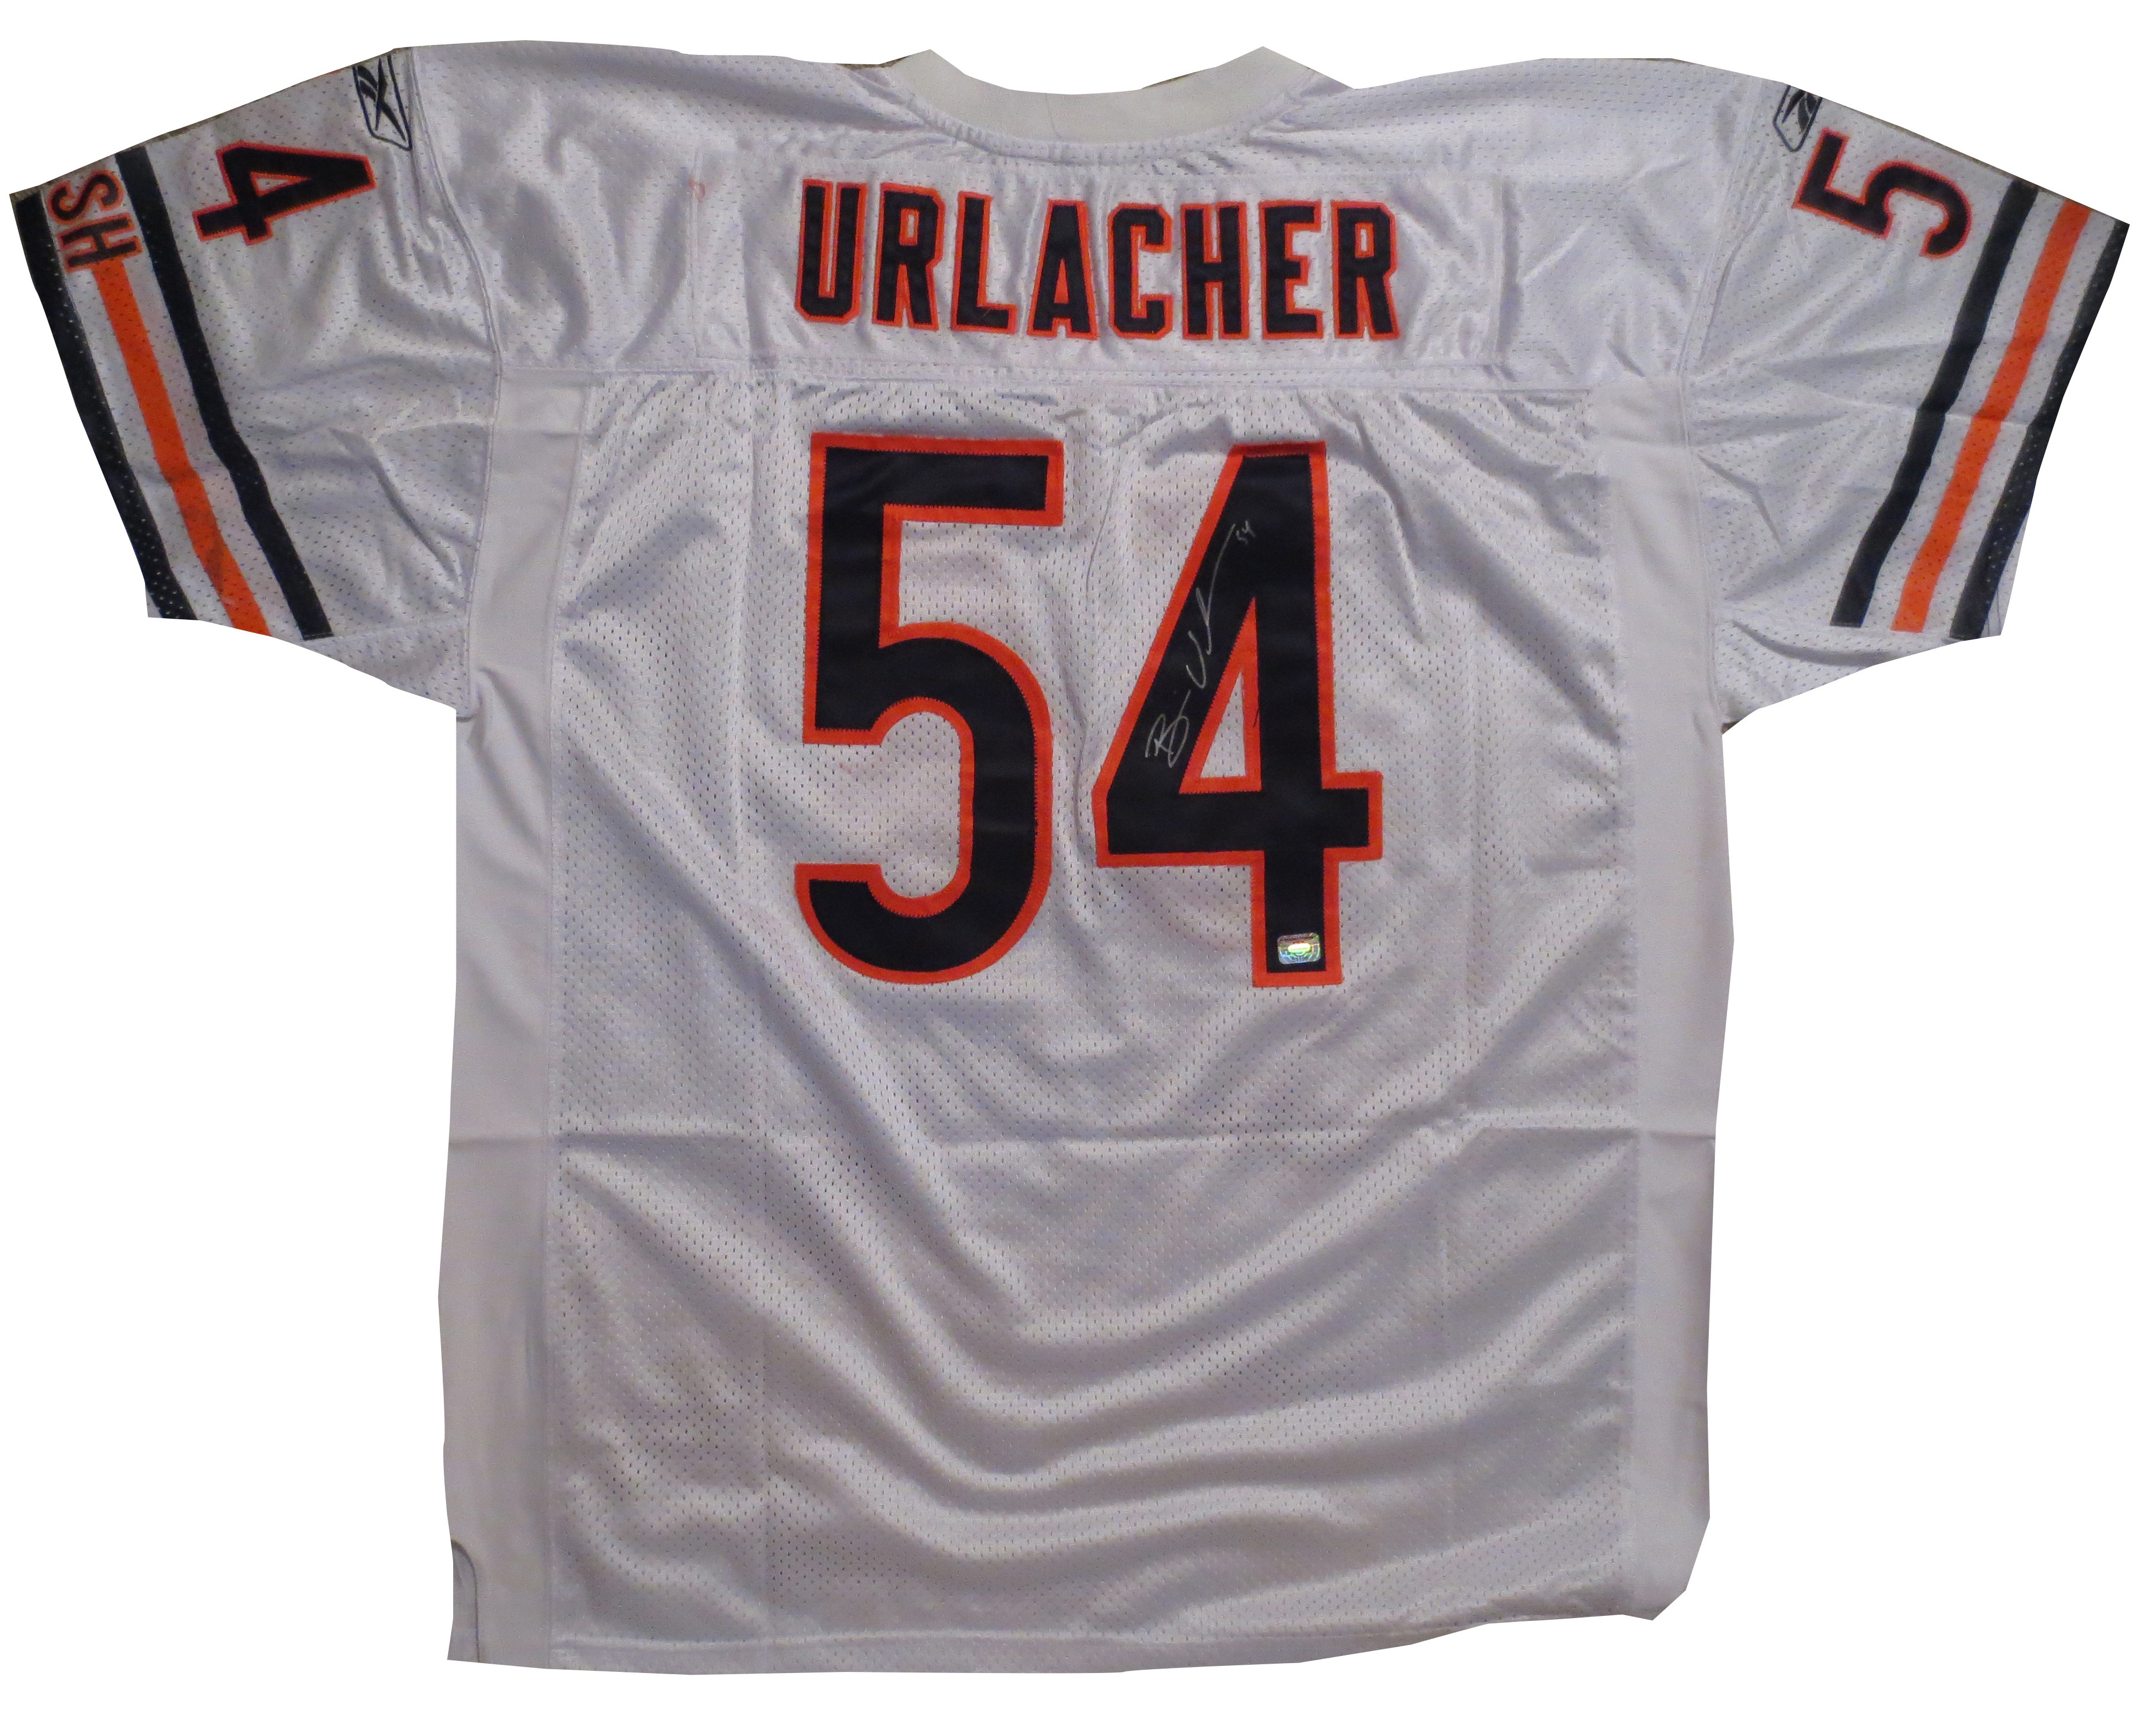 official photos ec421 7a8fd Brian Urlacher Autographed Bears Jersey from Powers Autographs